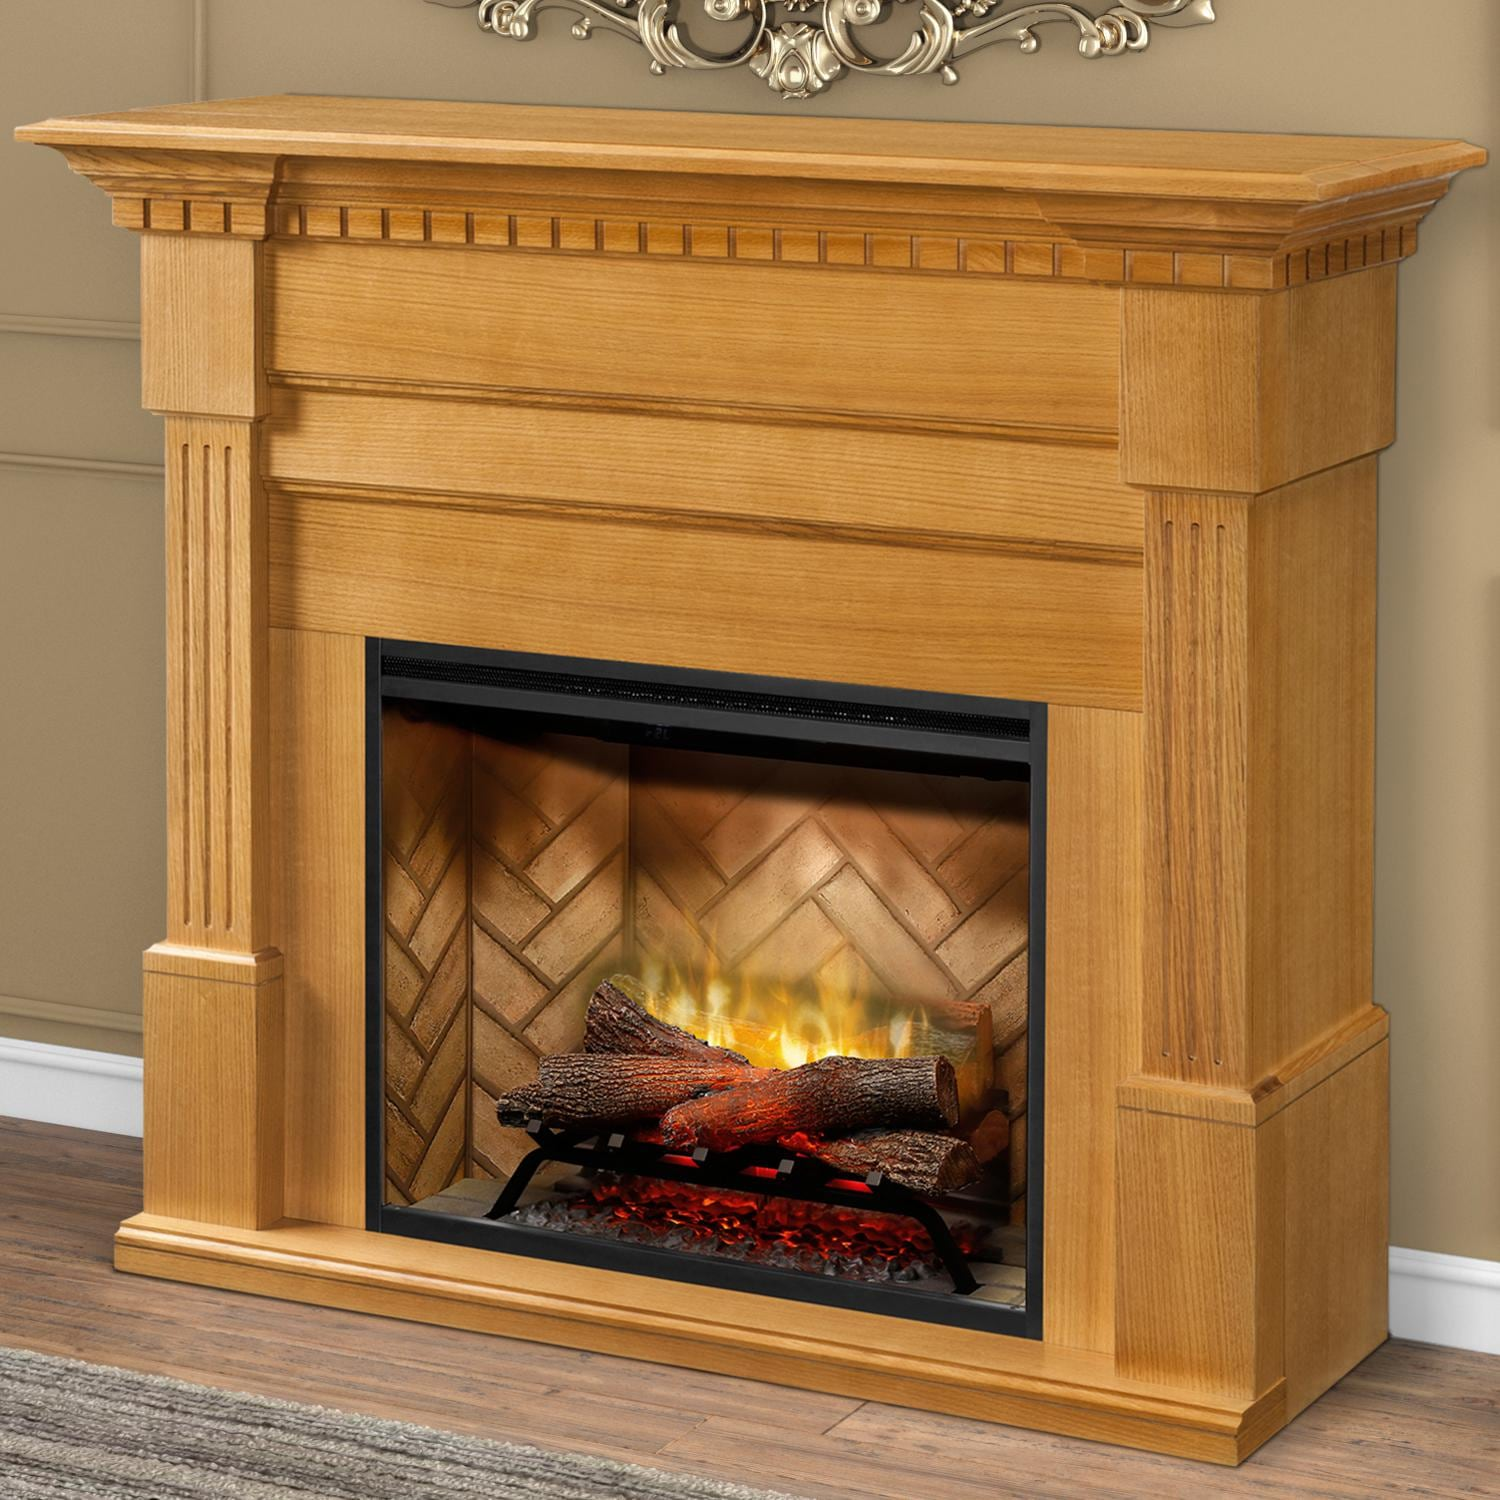 Fabulous Dimplex Christina Builtrite Modular 50 Inch Electric Fireplace Mantel Rift Oak Gds30Rbf 1801Ro Download Free Architecture Designs Scobabritishbridgeorg